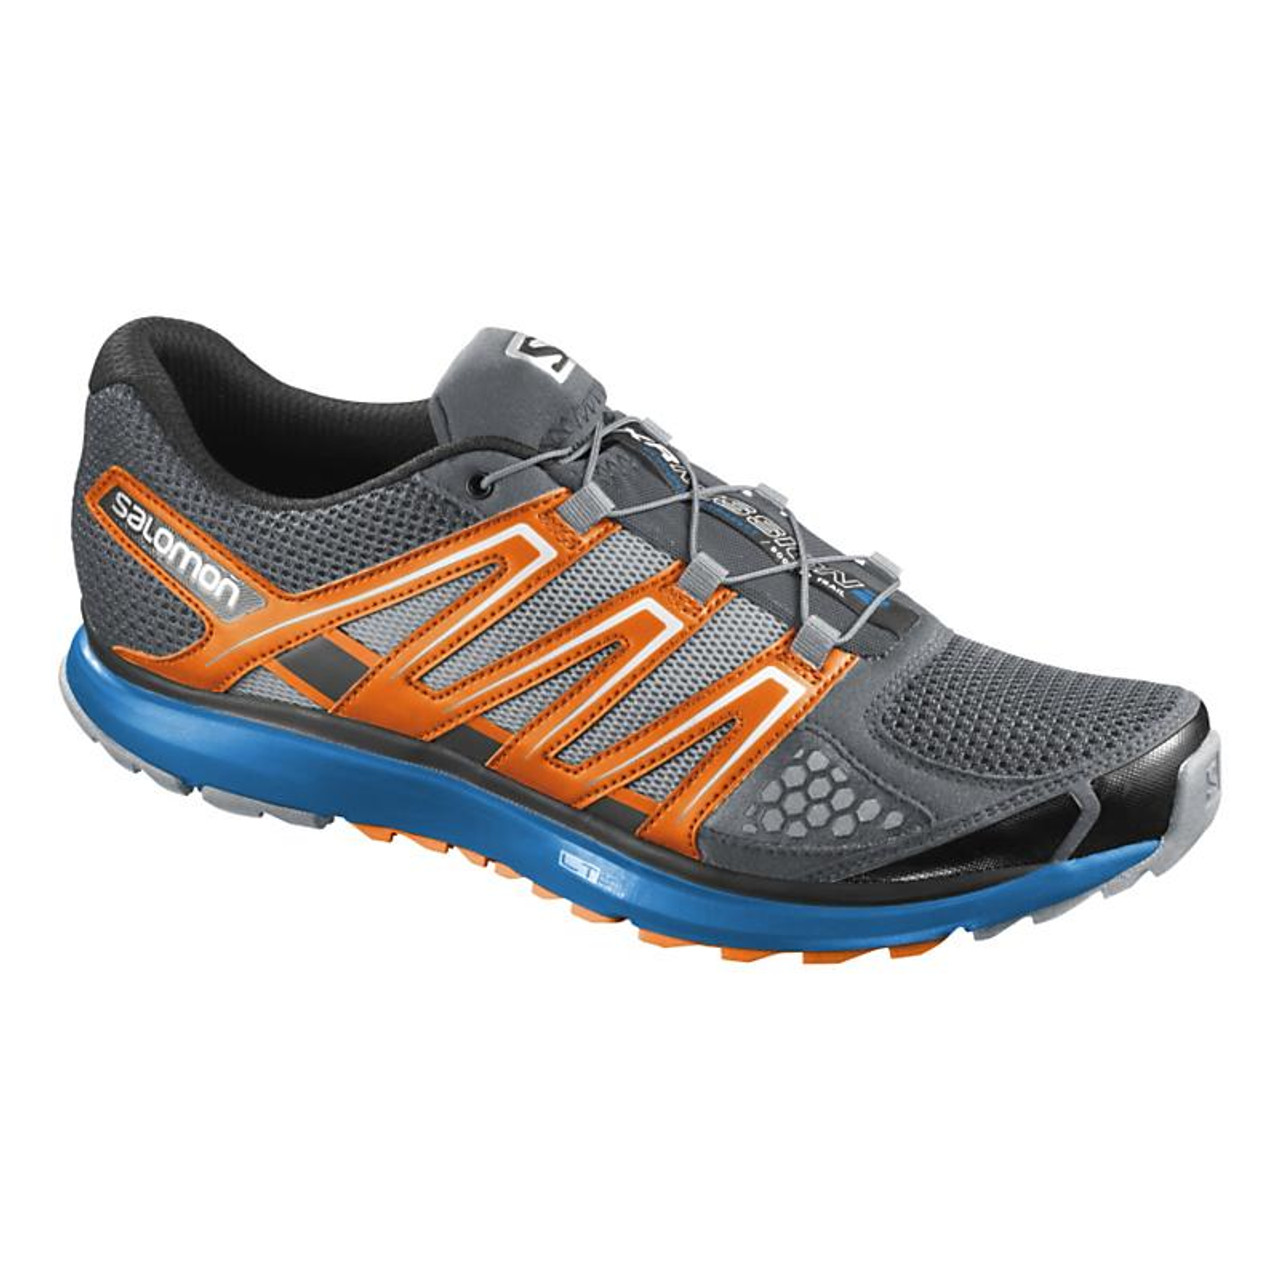 sports shoes 50eec 412ca Sale. Men s Salomon X-Scream color-Grey Orange